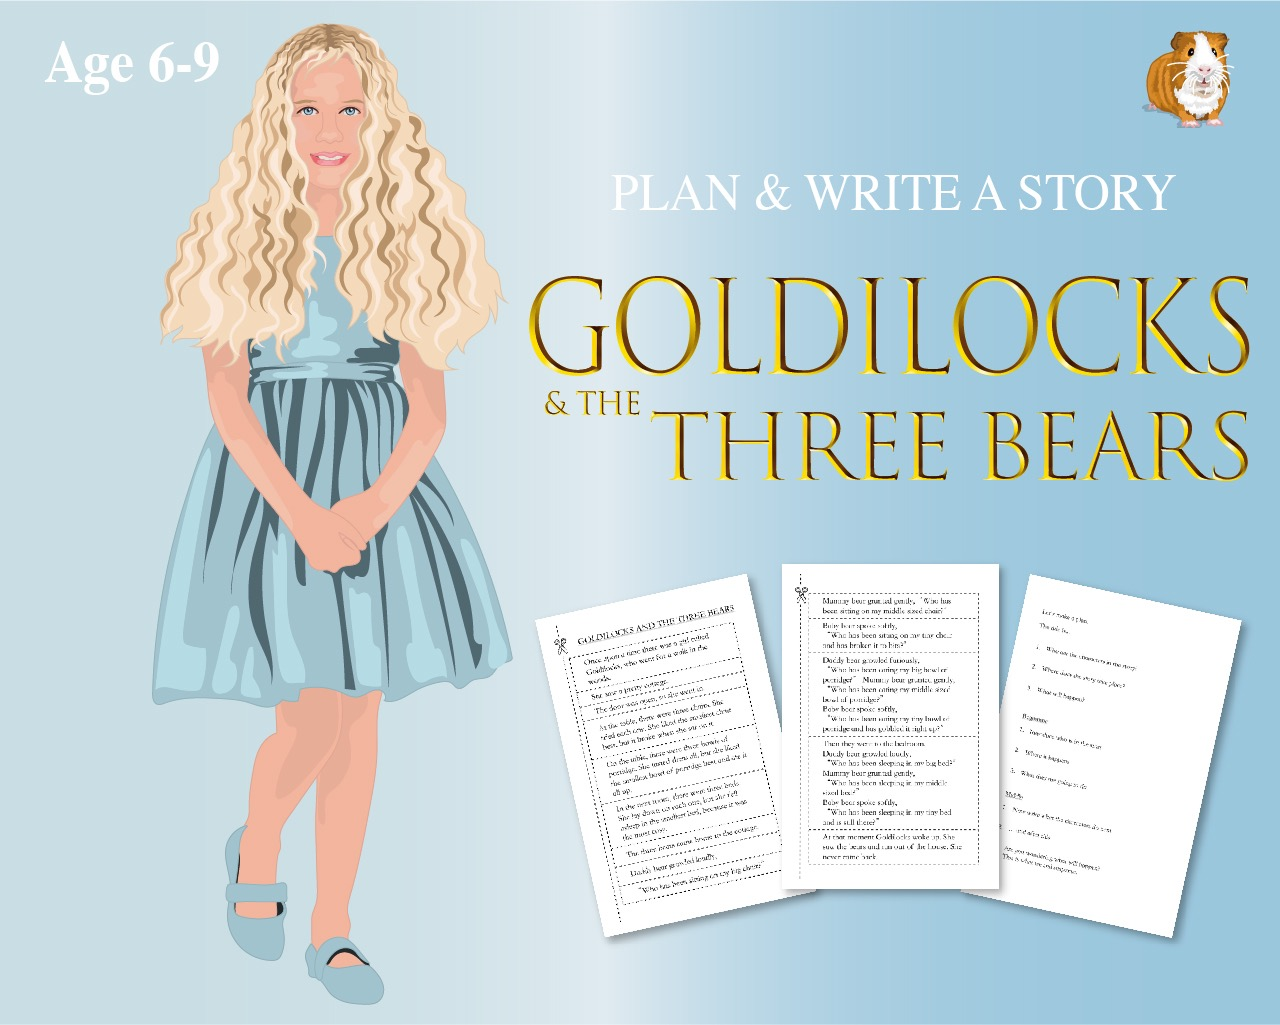 Cut Out And Write The Story Of 'Goldilocks And The Three Bears' (6-9 years)